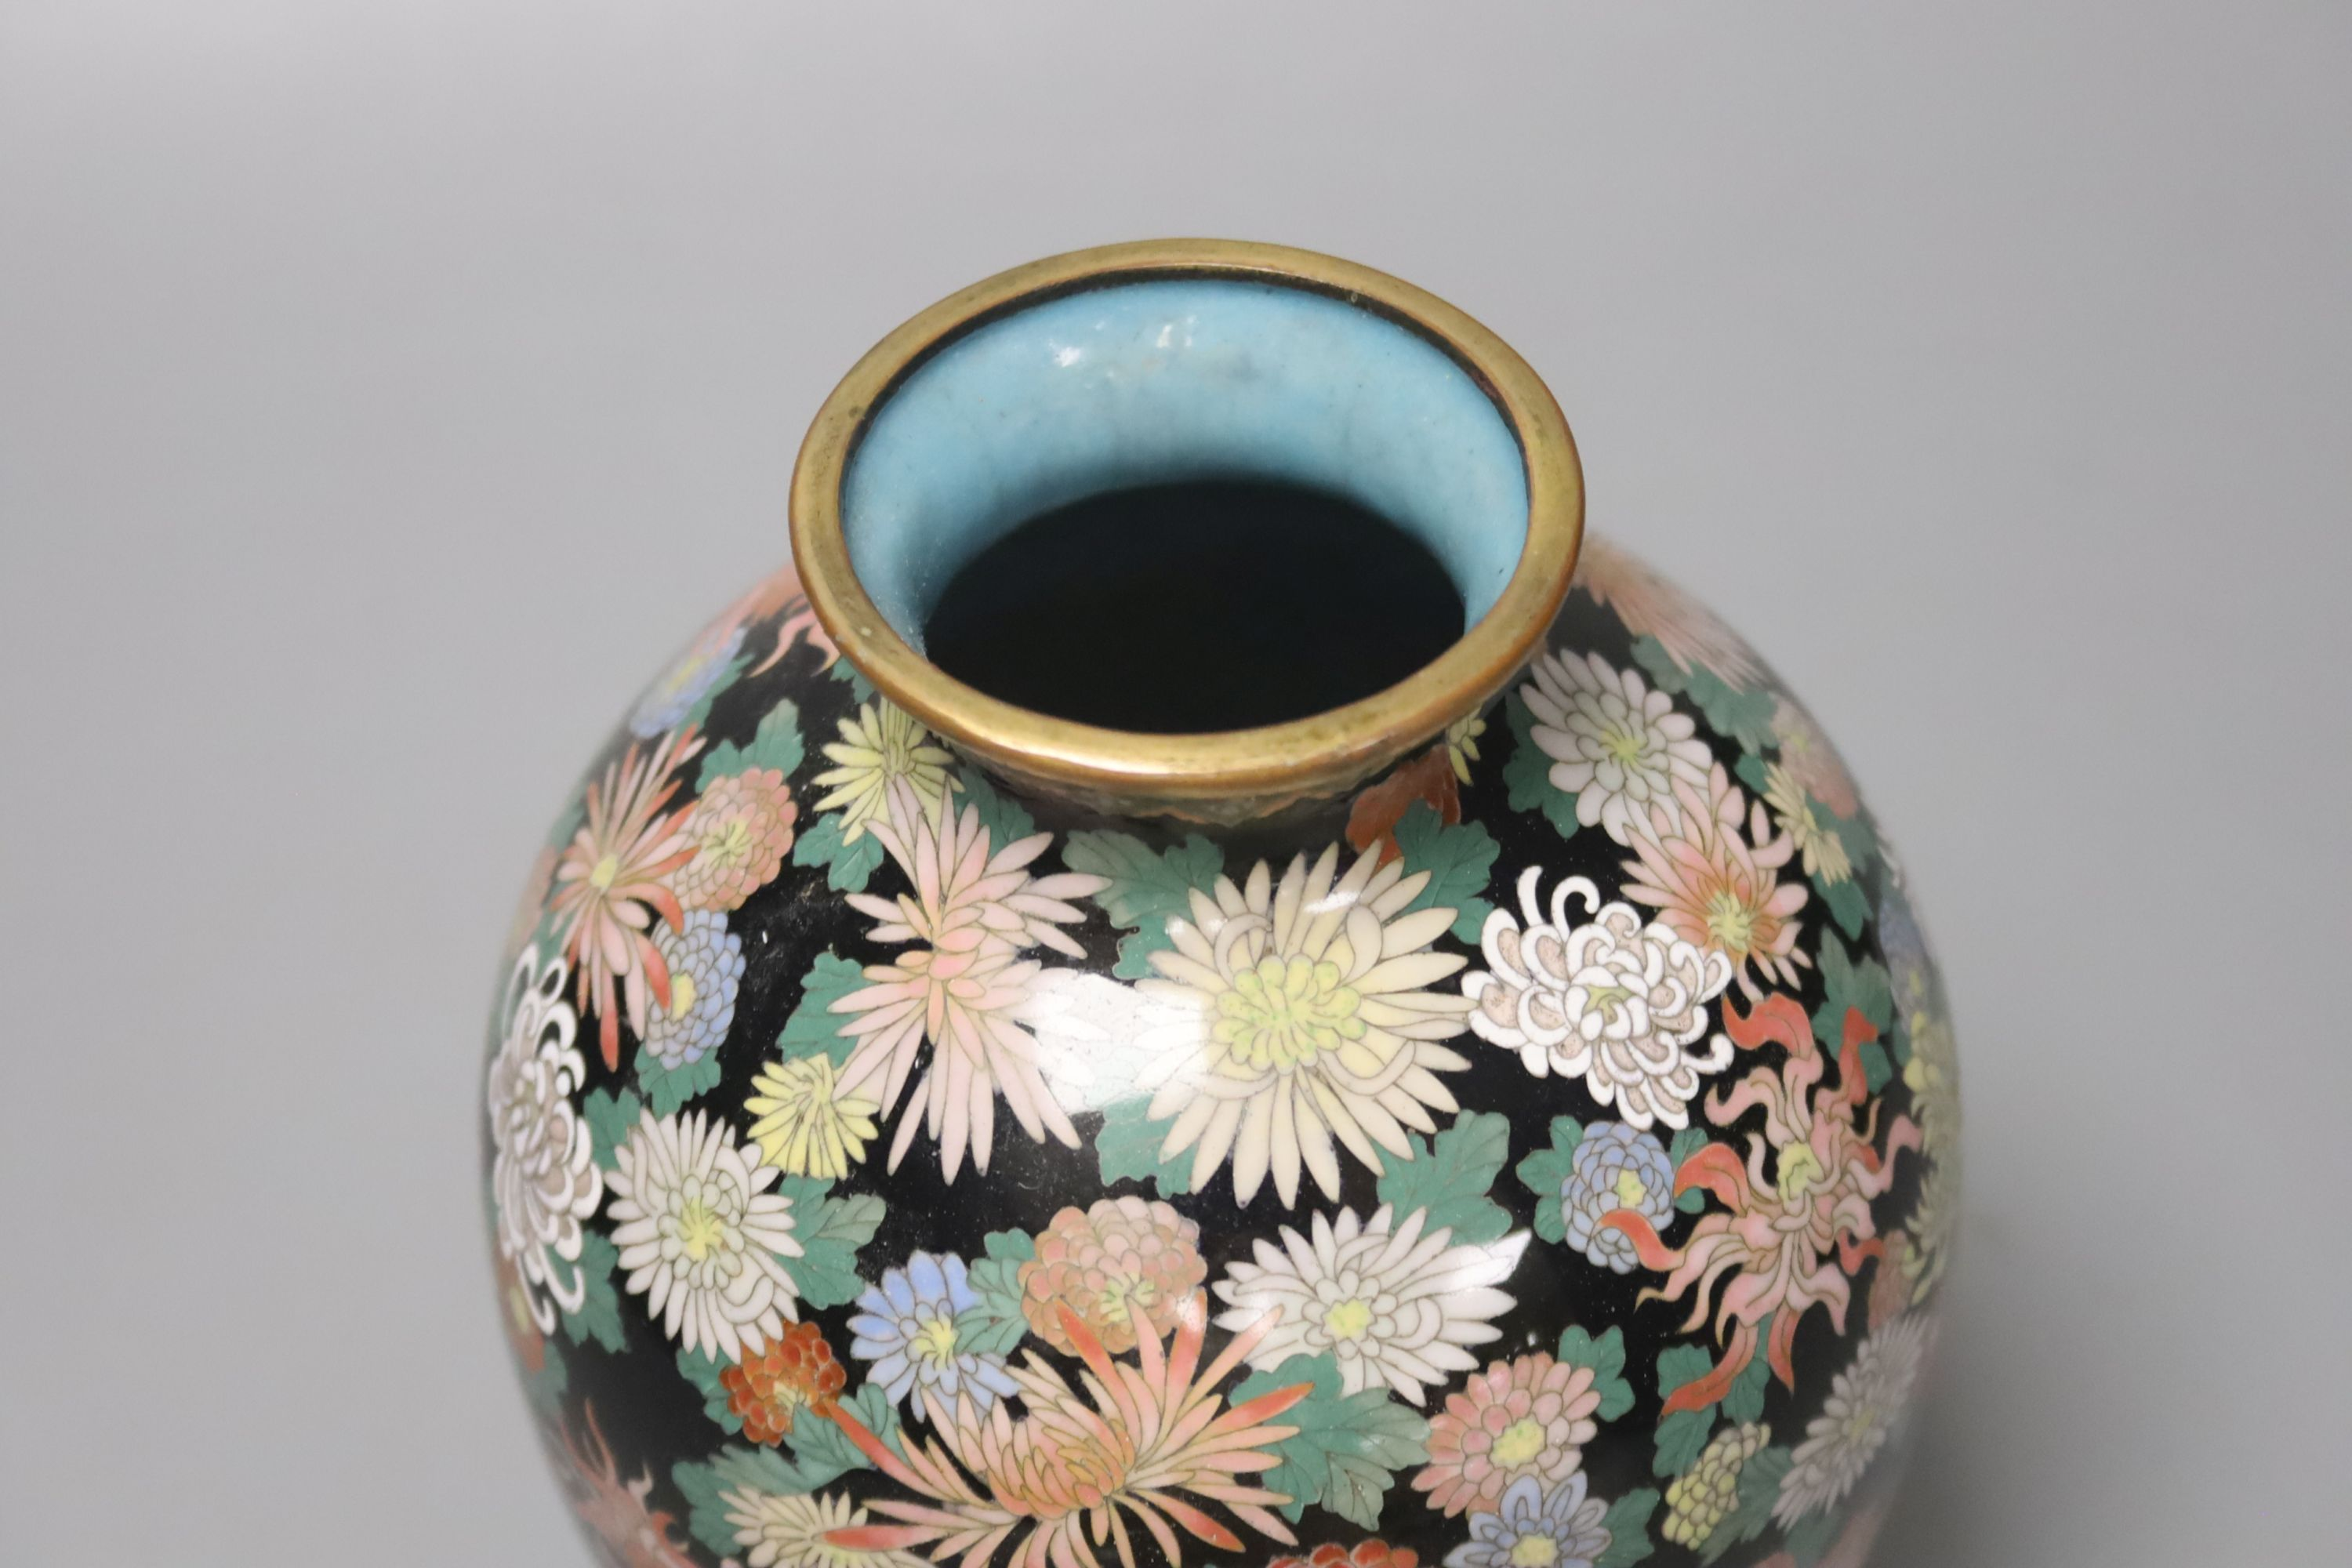 A Japanese silver wire cloisonne vase, decorated with flower heads, possibly Inaba, 16cm high - Image 3 of 4